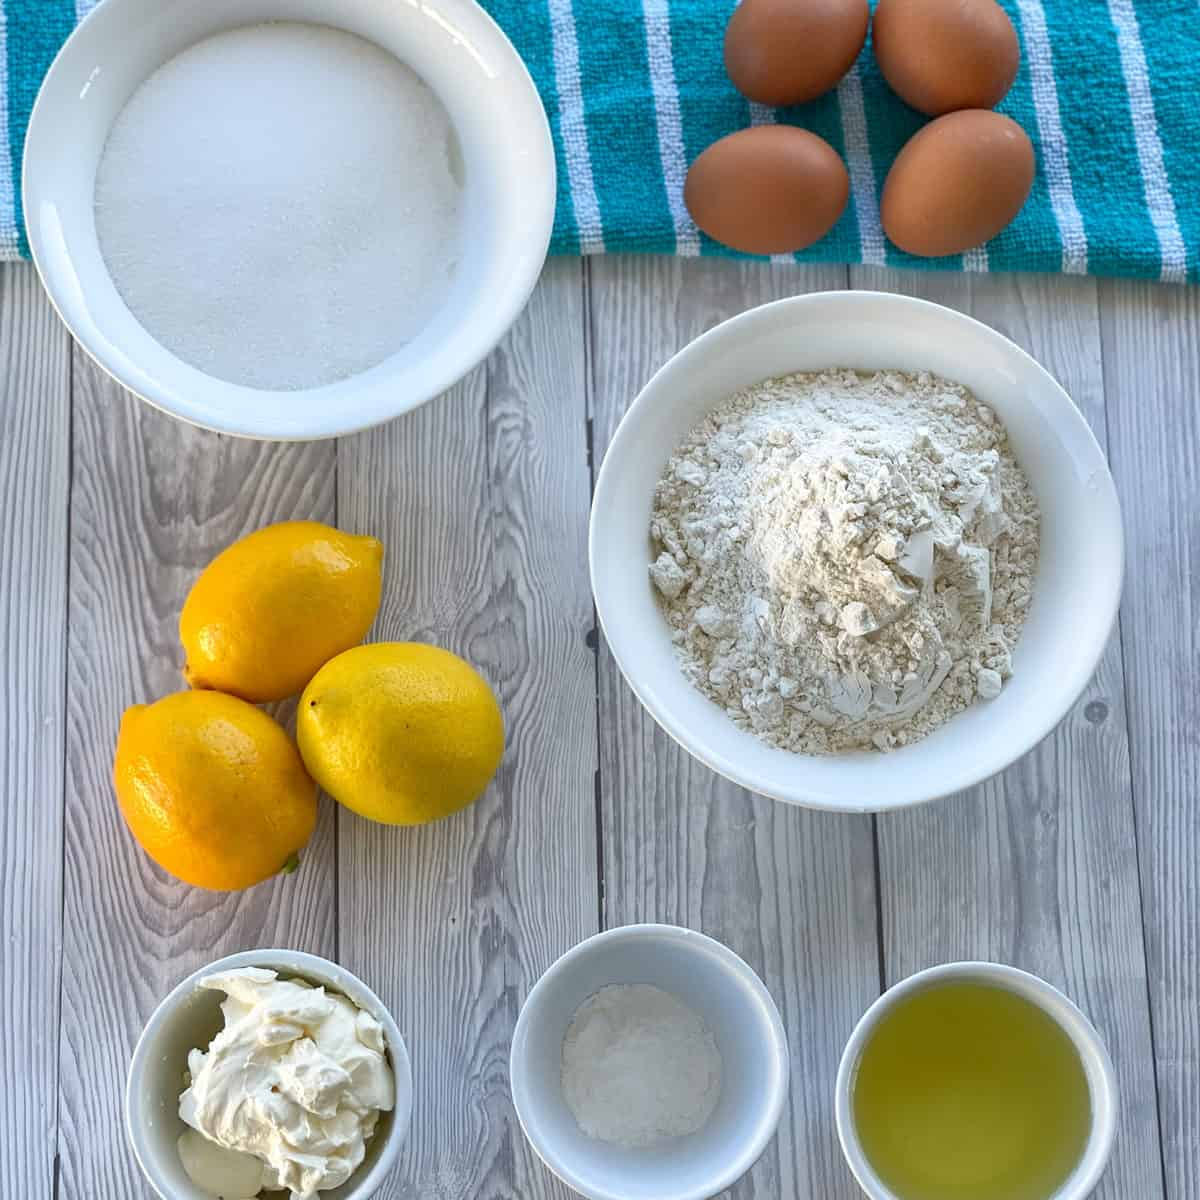 Ingredients used in making lemon syrup cake, see the recipe card for full details